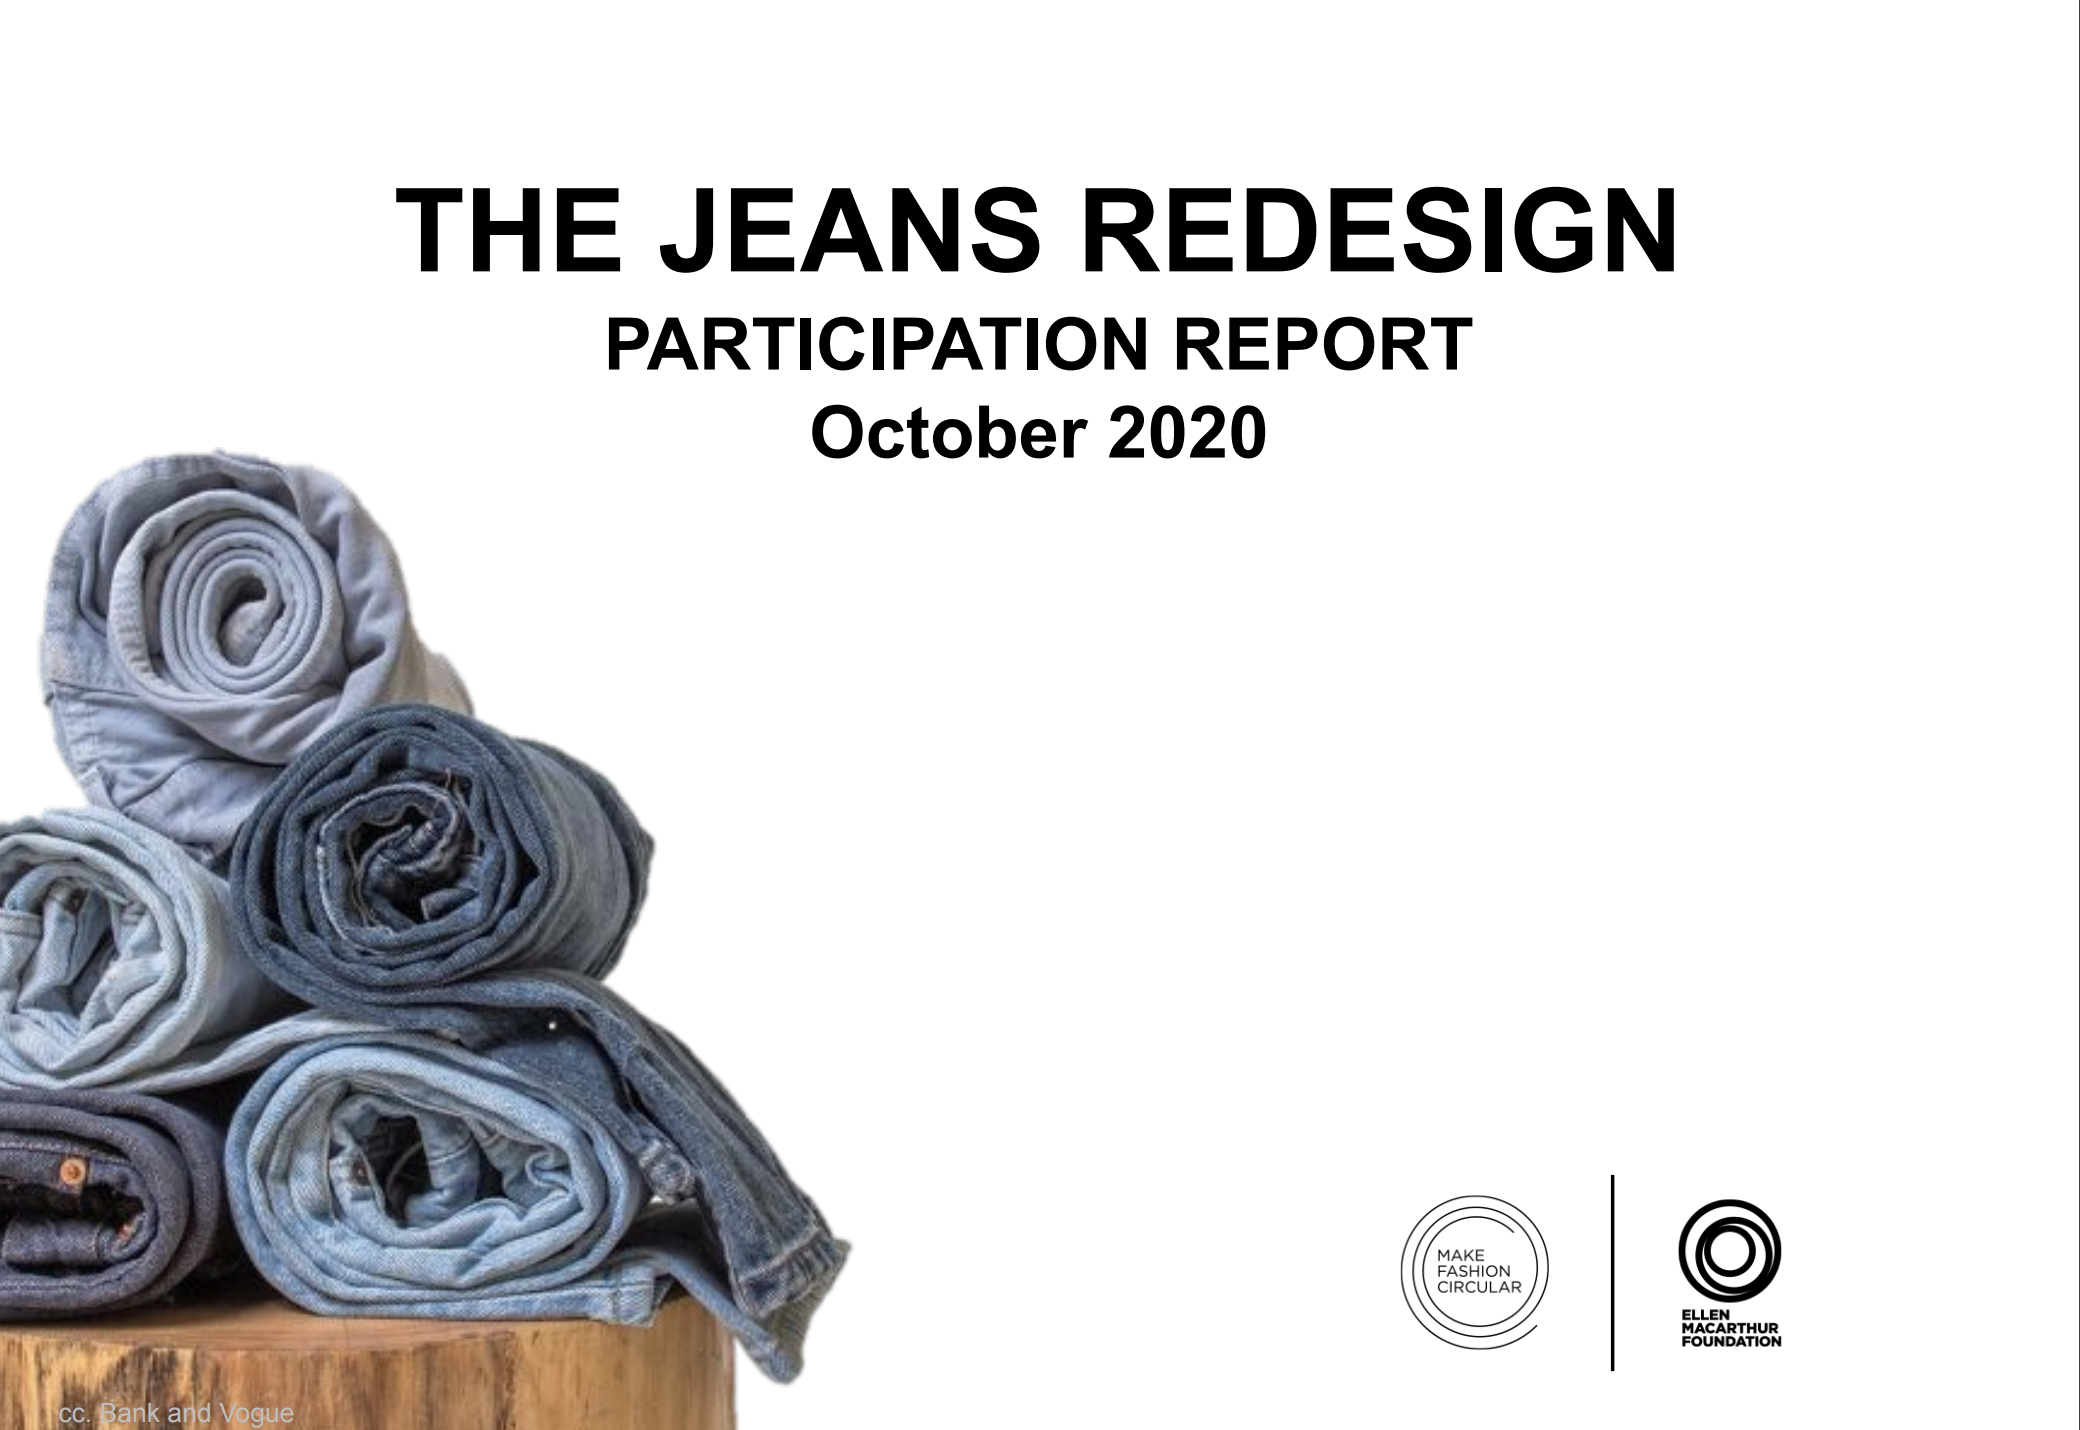 The Jeans Redesign participation report.